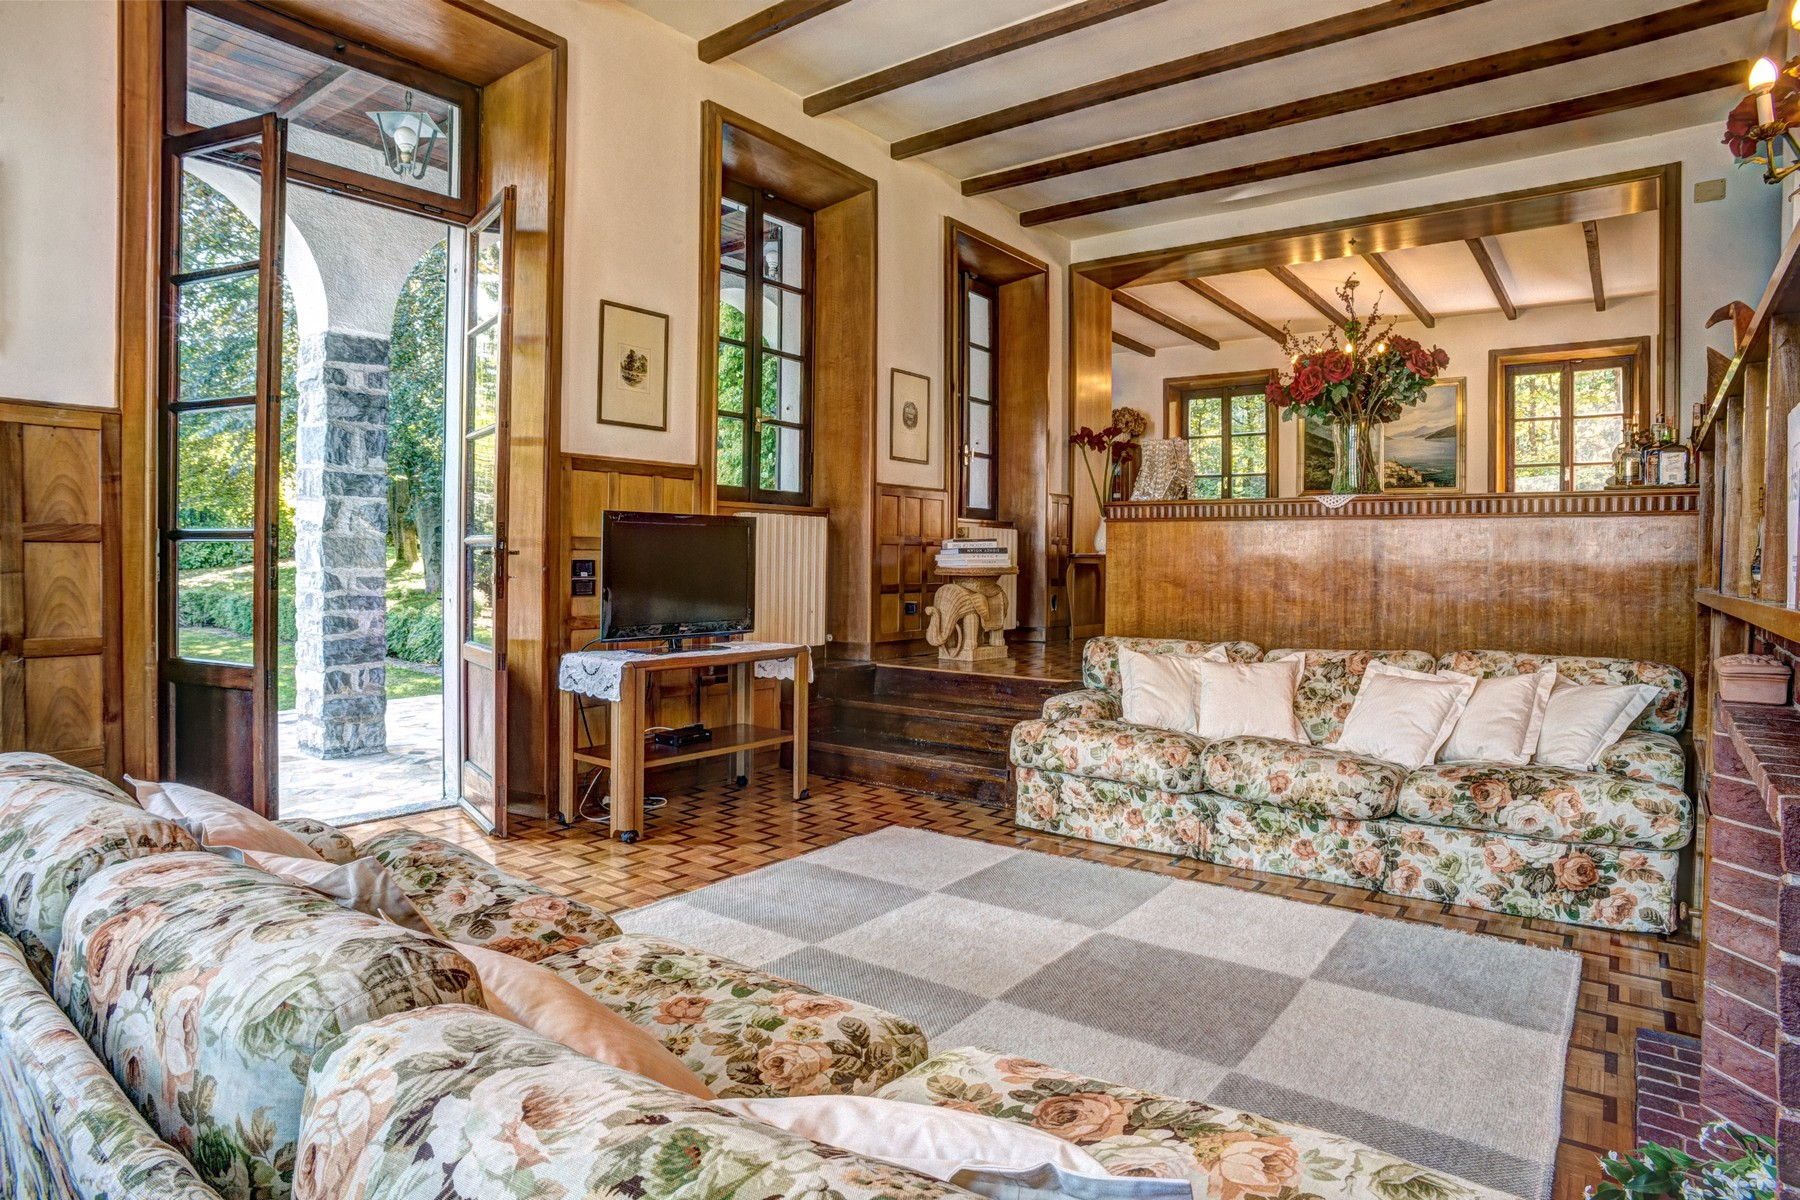 Additional photo for property listing at Magnificent property pieds dans l'eau Via Cadorna Oliveto Lario, Lecco 23865 Italy